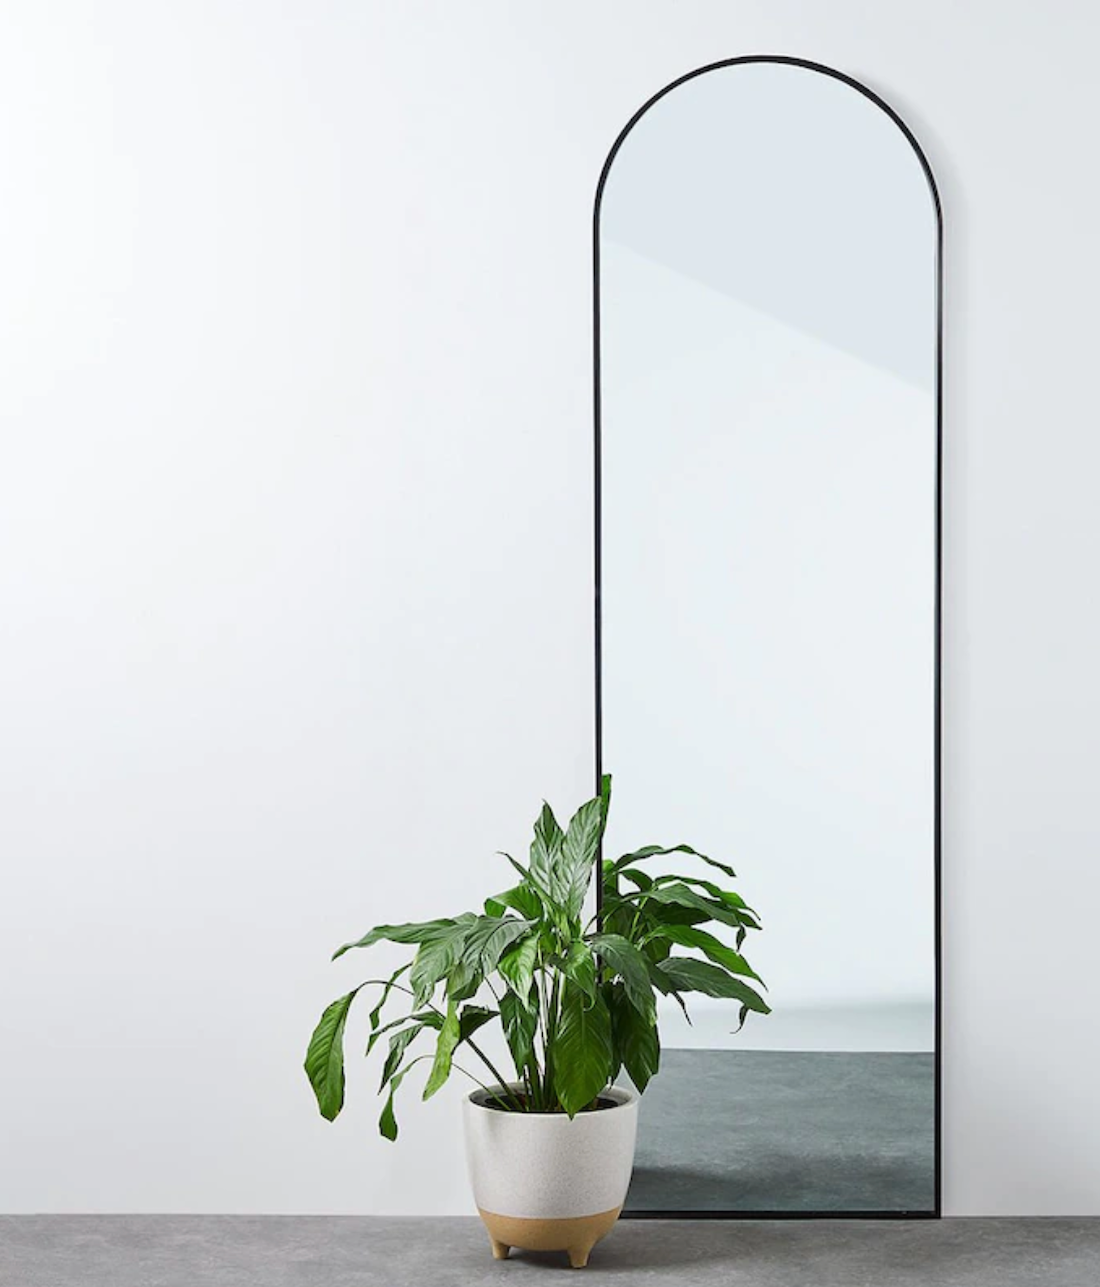 Arch mirror from Target